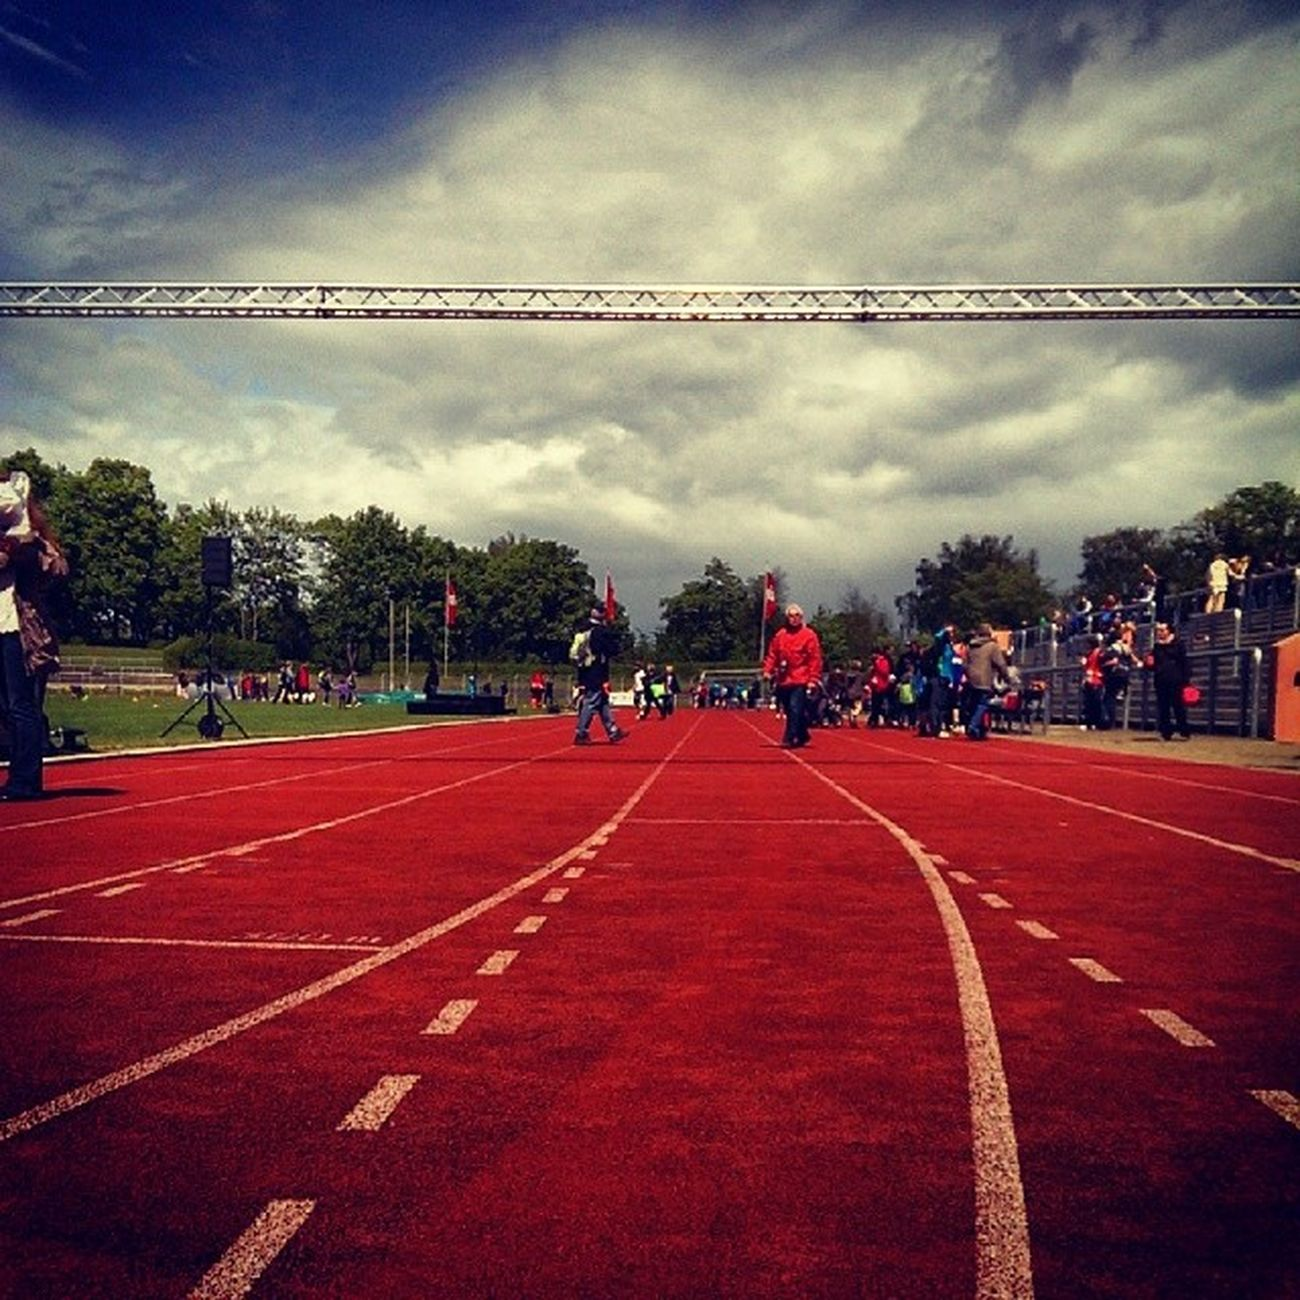 Track Laufen Running Competition start colors sky cloud instagramhub instagood